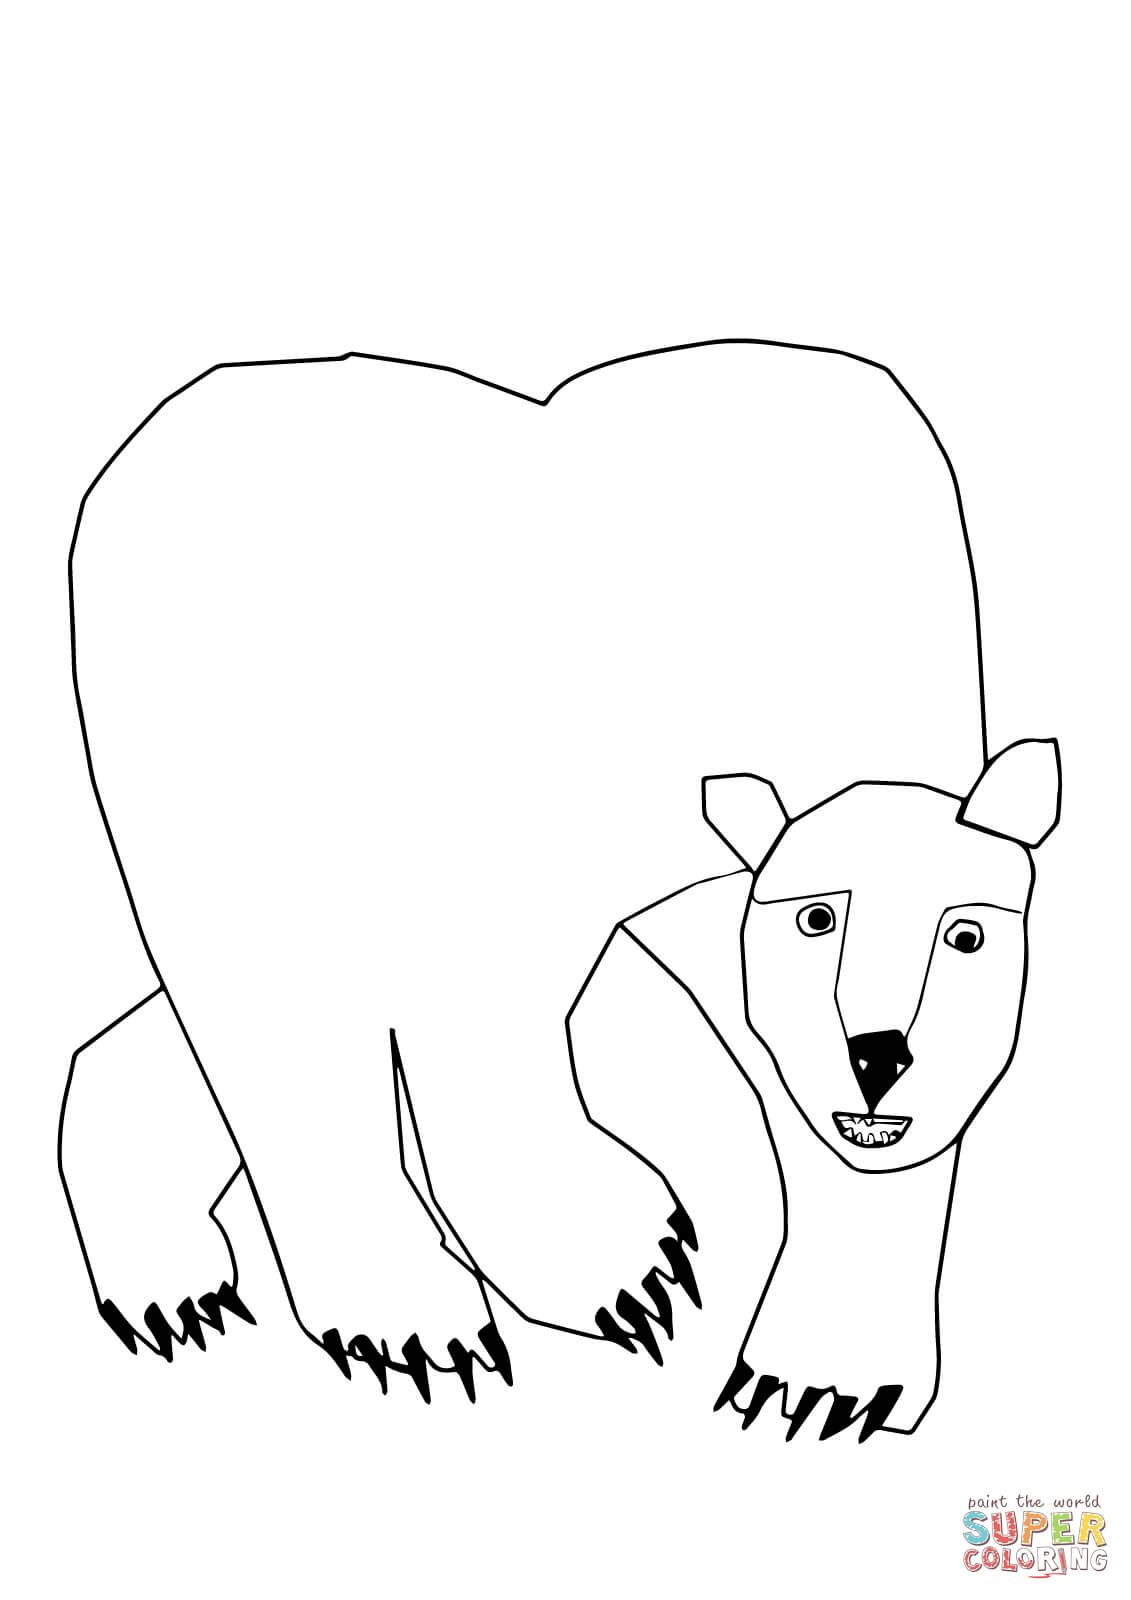 Polar Bear Polar Bear What Do You Hear Super Coloring Polar